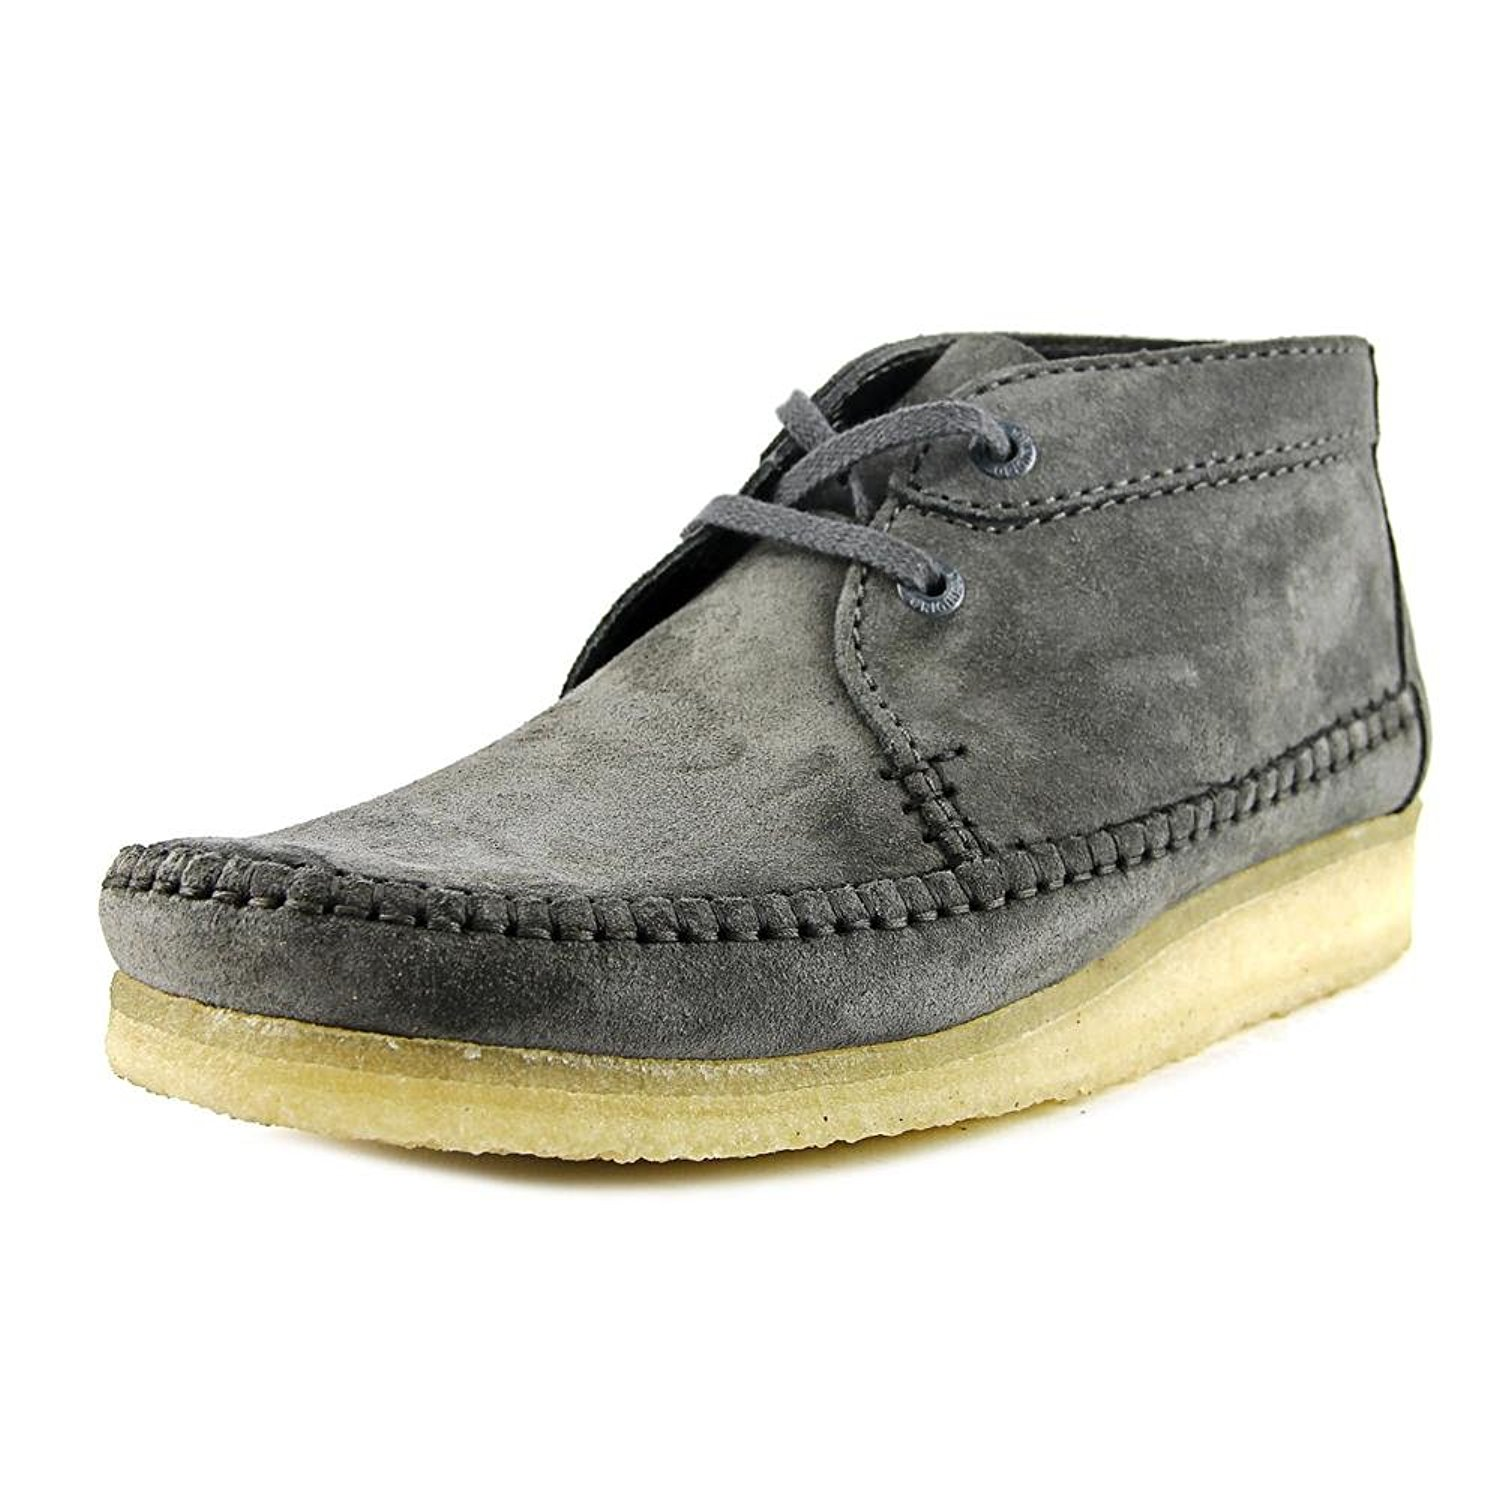 Clarks Booties | Womens Wallabee Shoes | Clarks Wallabees Men